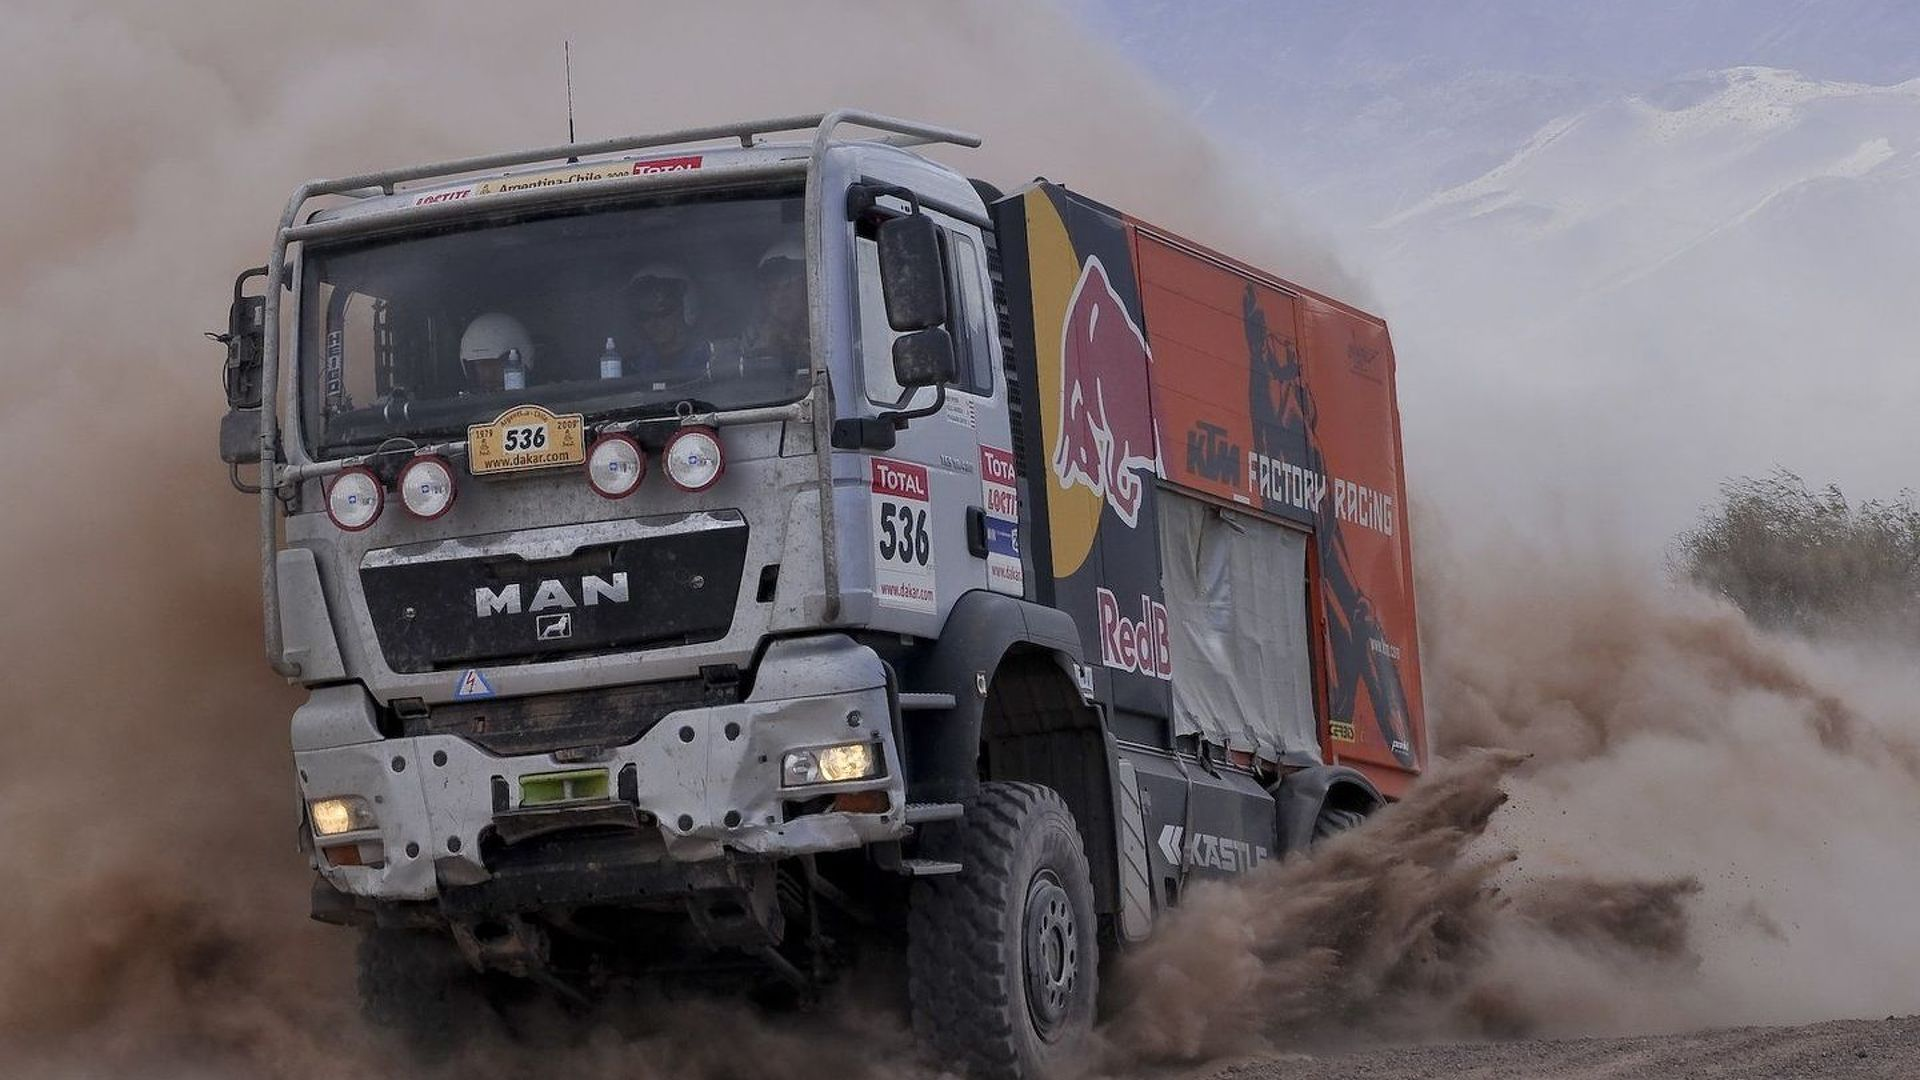 Smugglers Busted In Fake Dakar Rally Truck With 800 Kilos Of